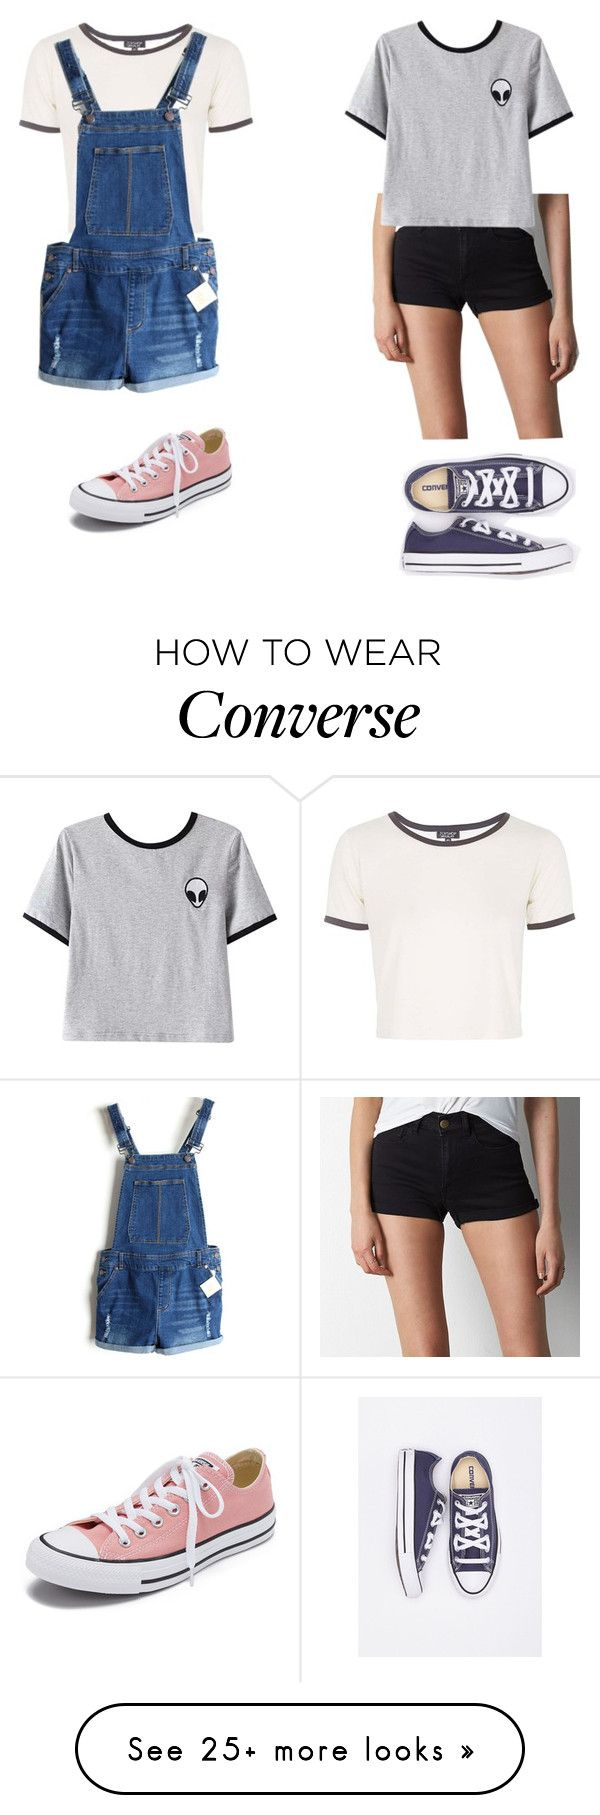 """Converse"" by maybeckc on Polyvore featuring Topshop, Converse, American Eagle Outfitters and Chicnova Fashion"